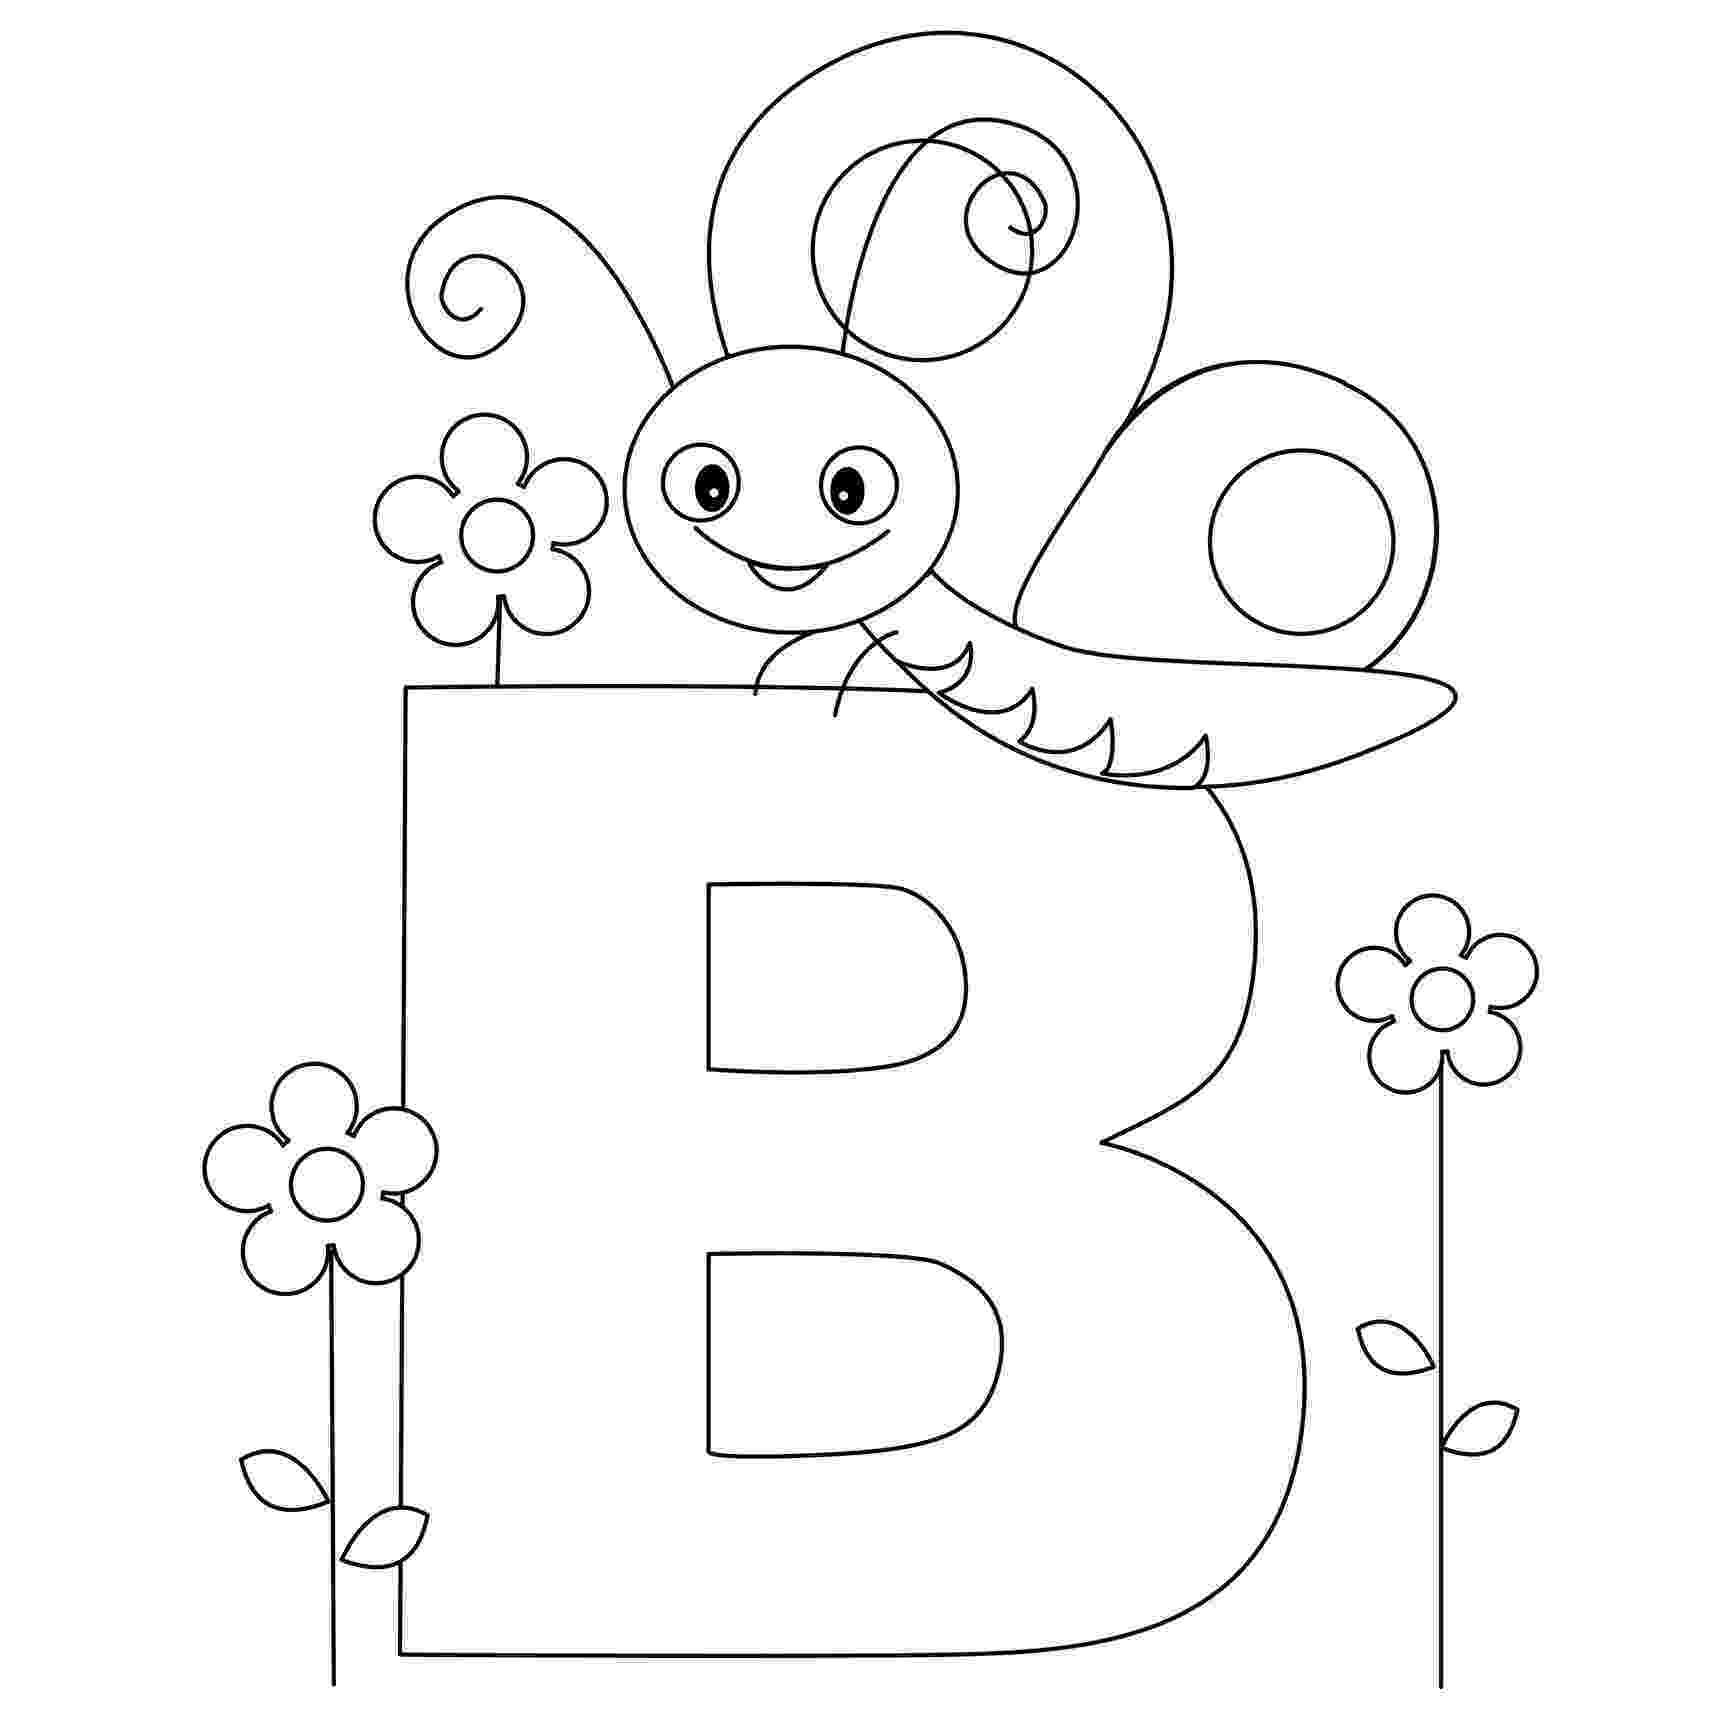 childrens colouring pages alphabet free printable alphabet coloring pages for kids best childrens alphabet pages colouring